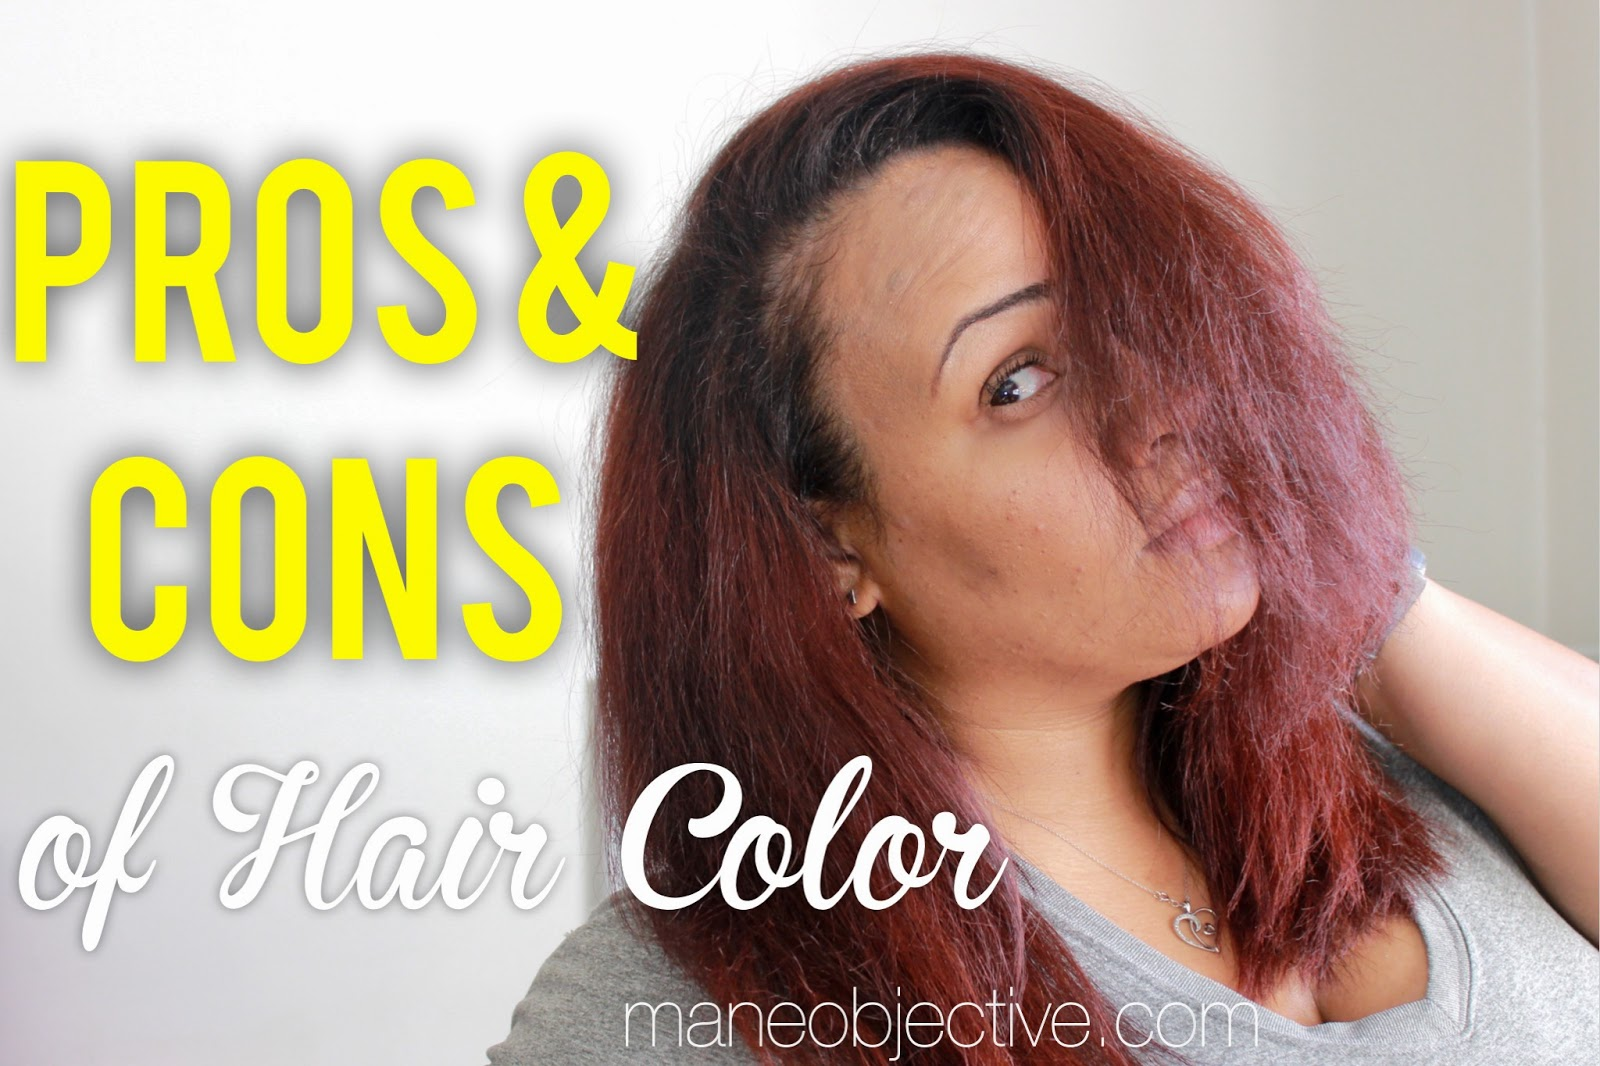 Straight hair perms pros and cons - Thinking About Coloring Your Natural Hair Weigh The Pros And Cons First